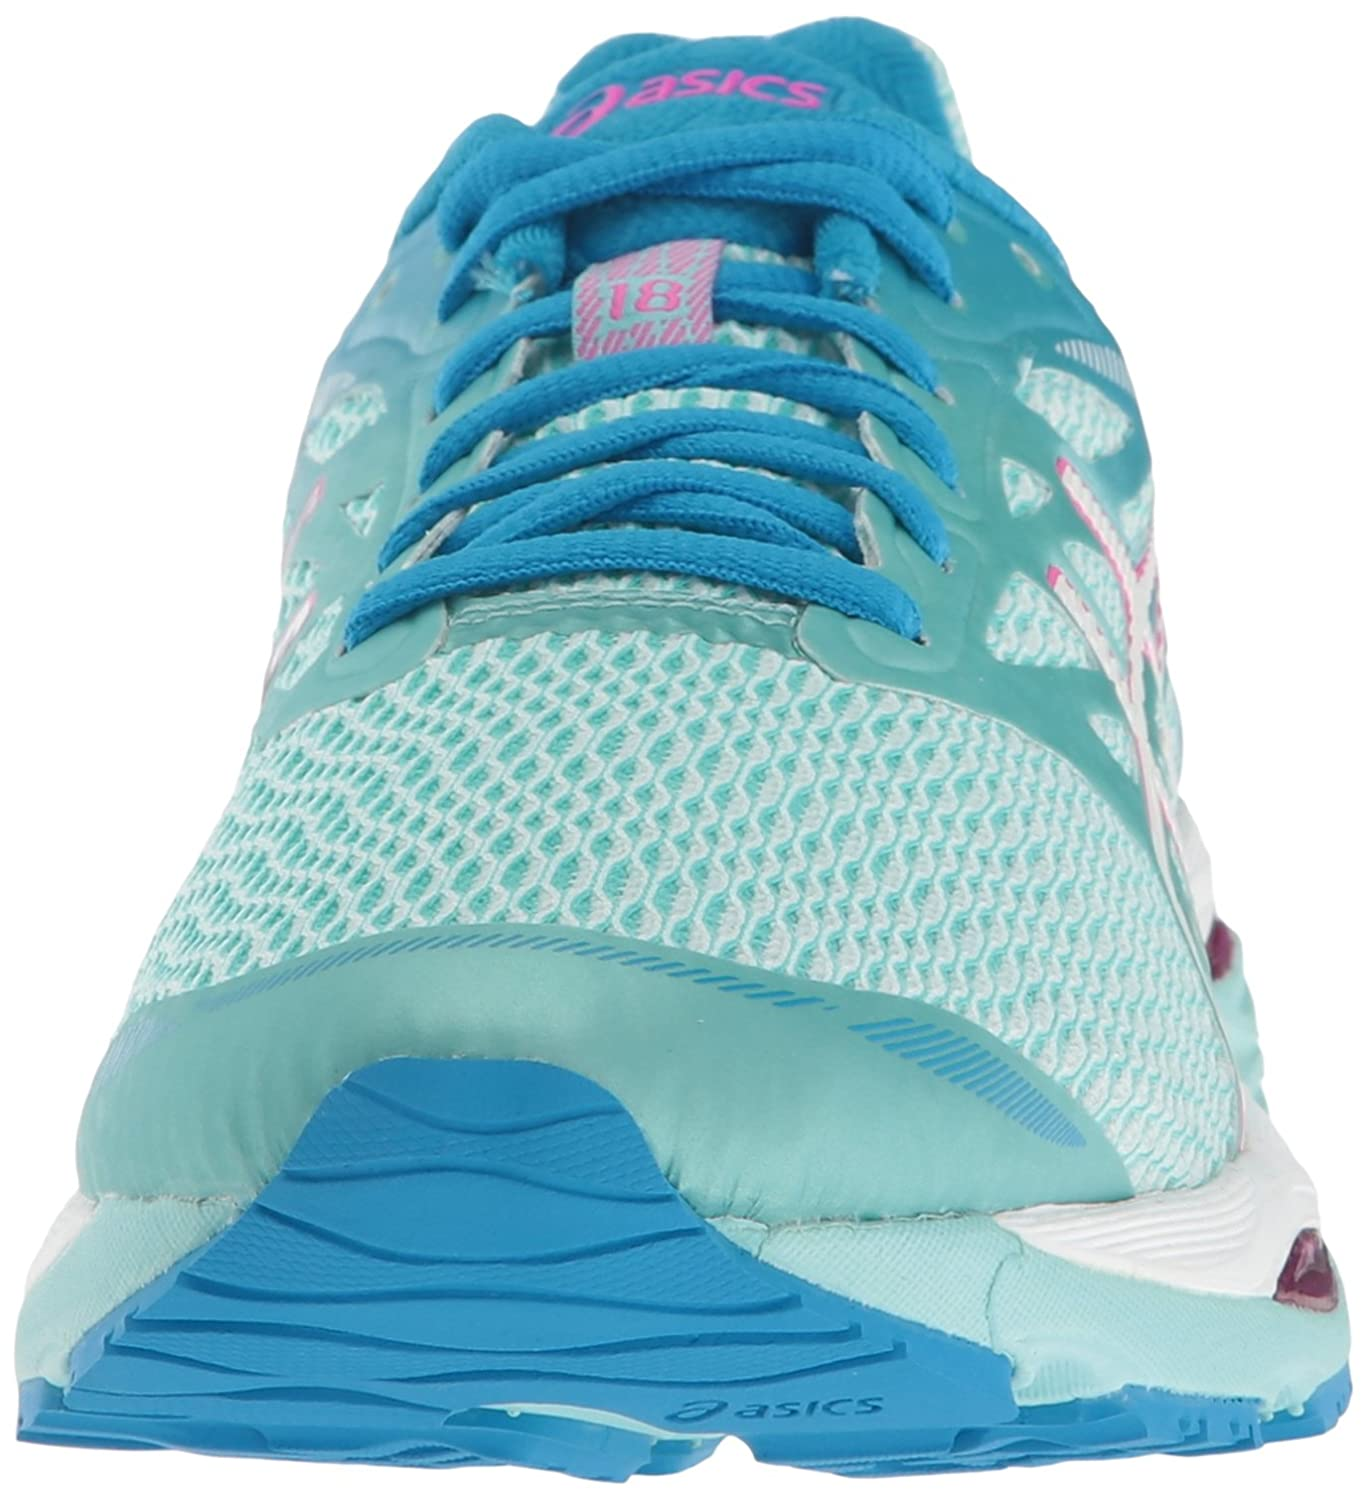 Zapato deportivo ASICS Gel Cumulus 16461 18 ASICS Blanc pour 19317 Aqua mujer 19317 a1a5a53 - caillouoyunlari.info